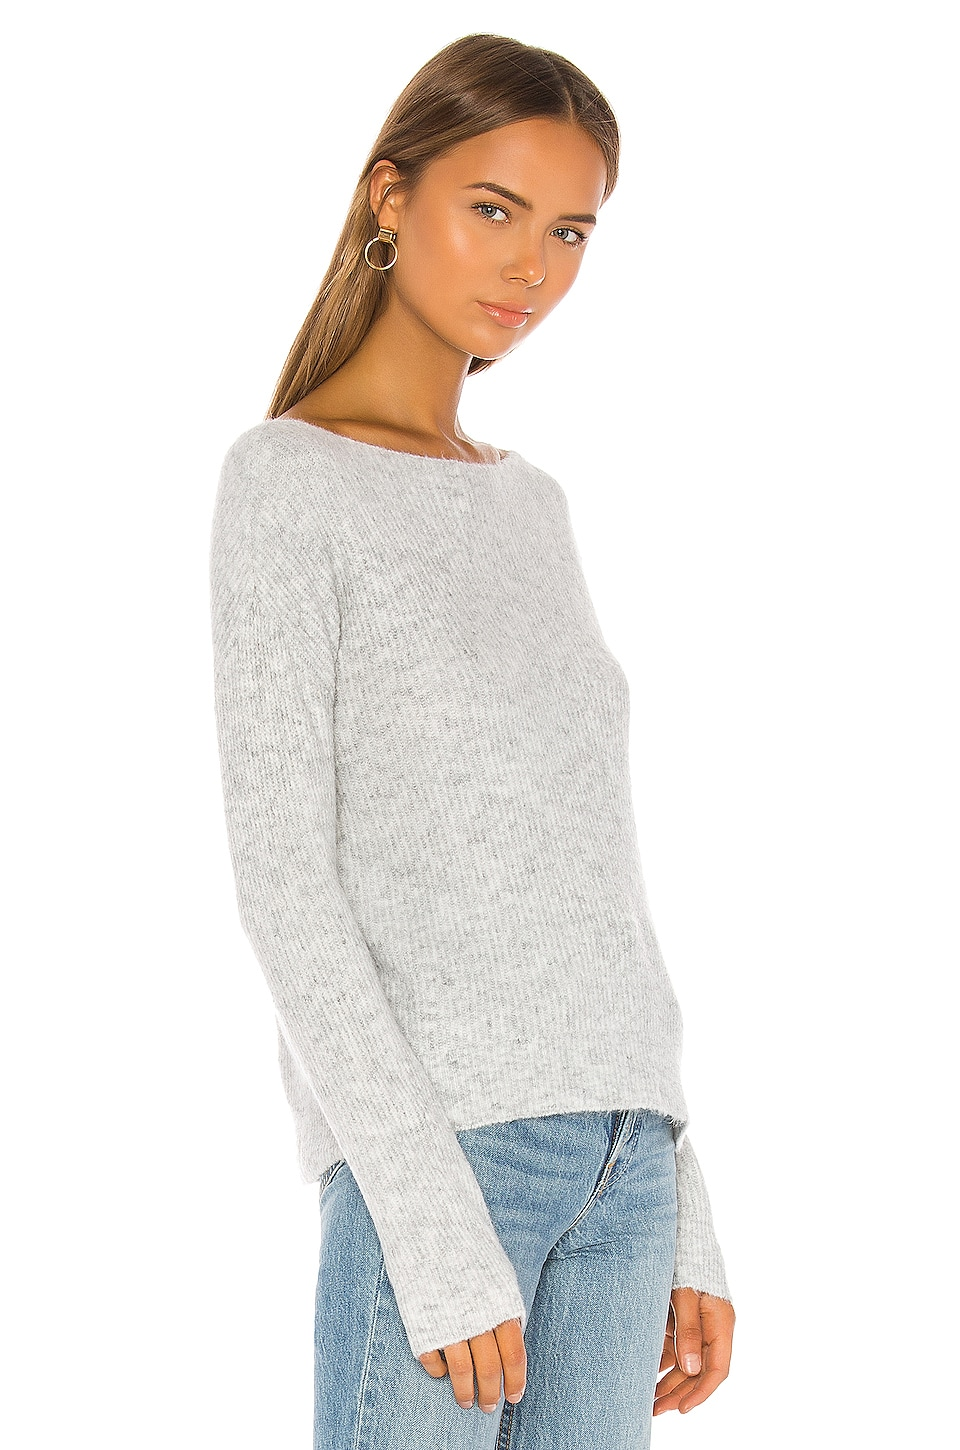 Alayah Off Shoulder Sweater, view 3, click to view large image.